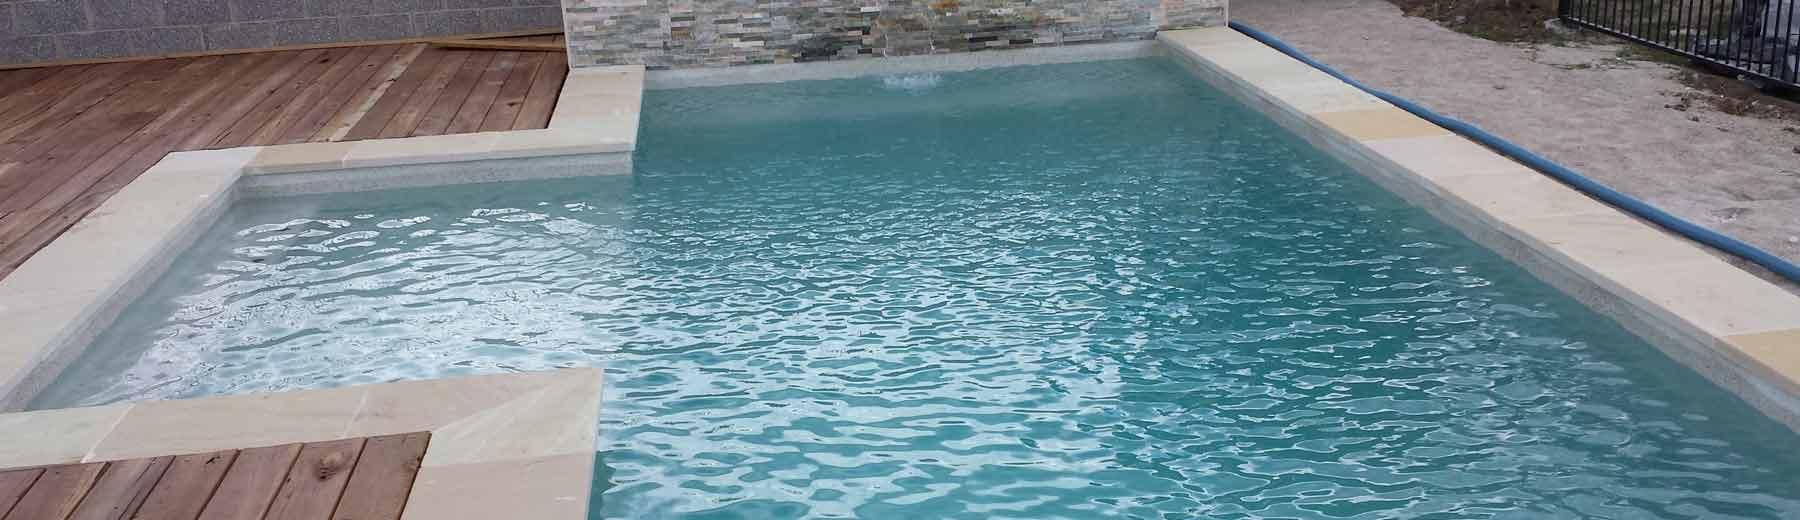 Concrete pools perth swimming pools for Design of swimming pool concrete